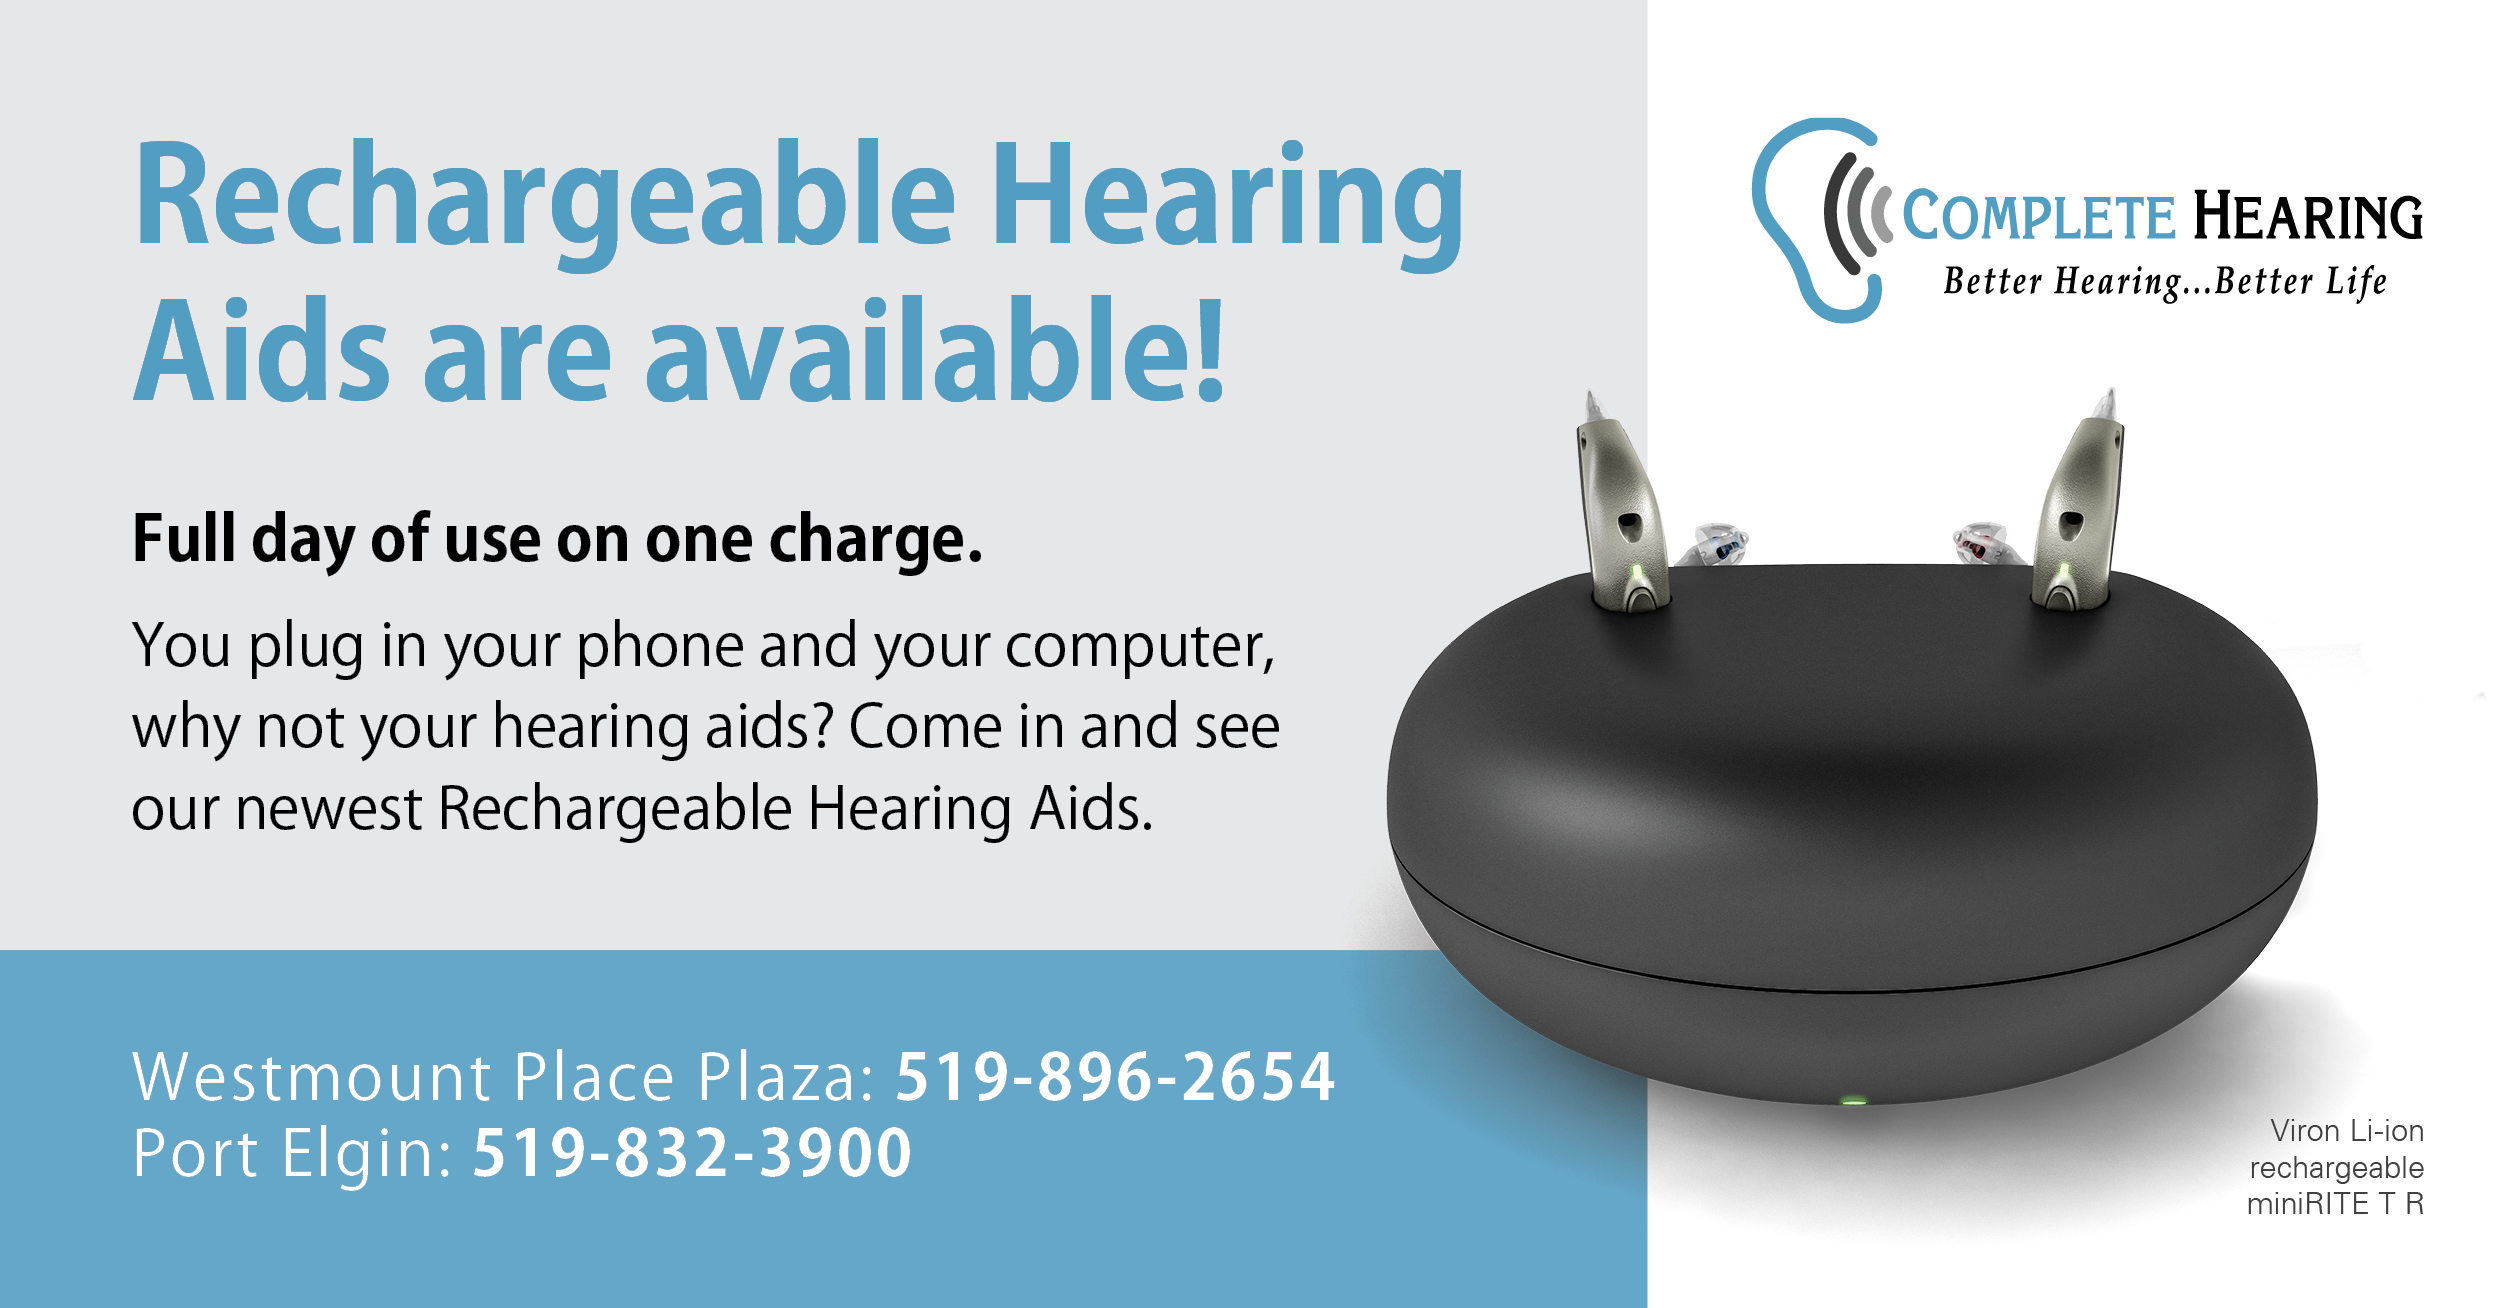 Recharageable Hearing Aids